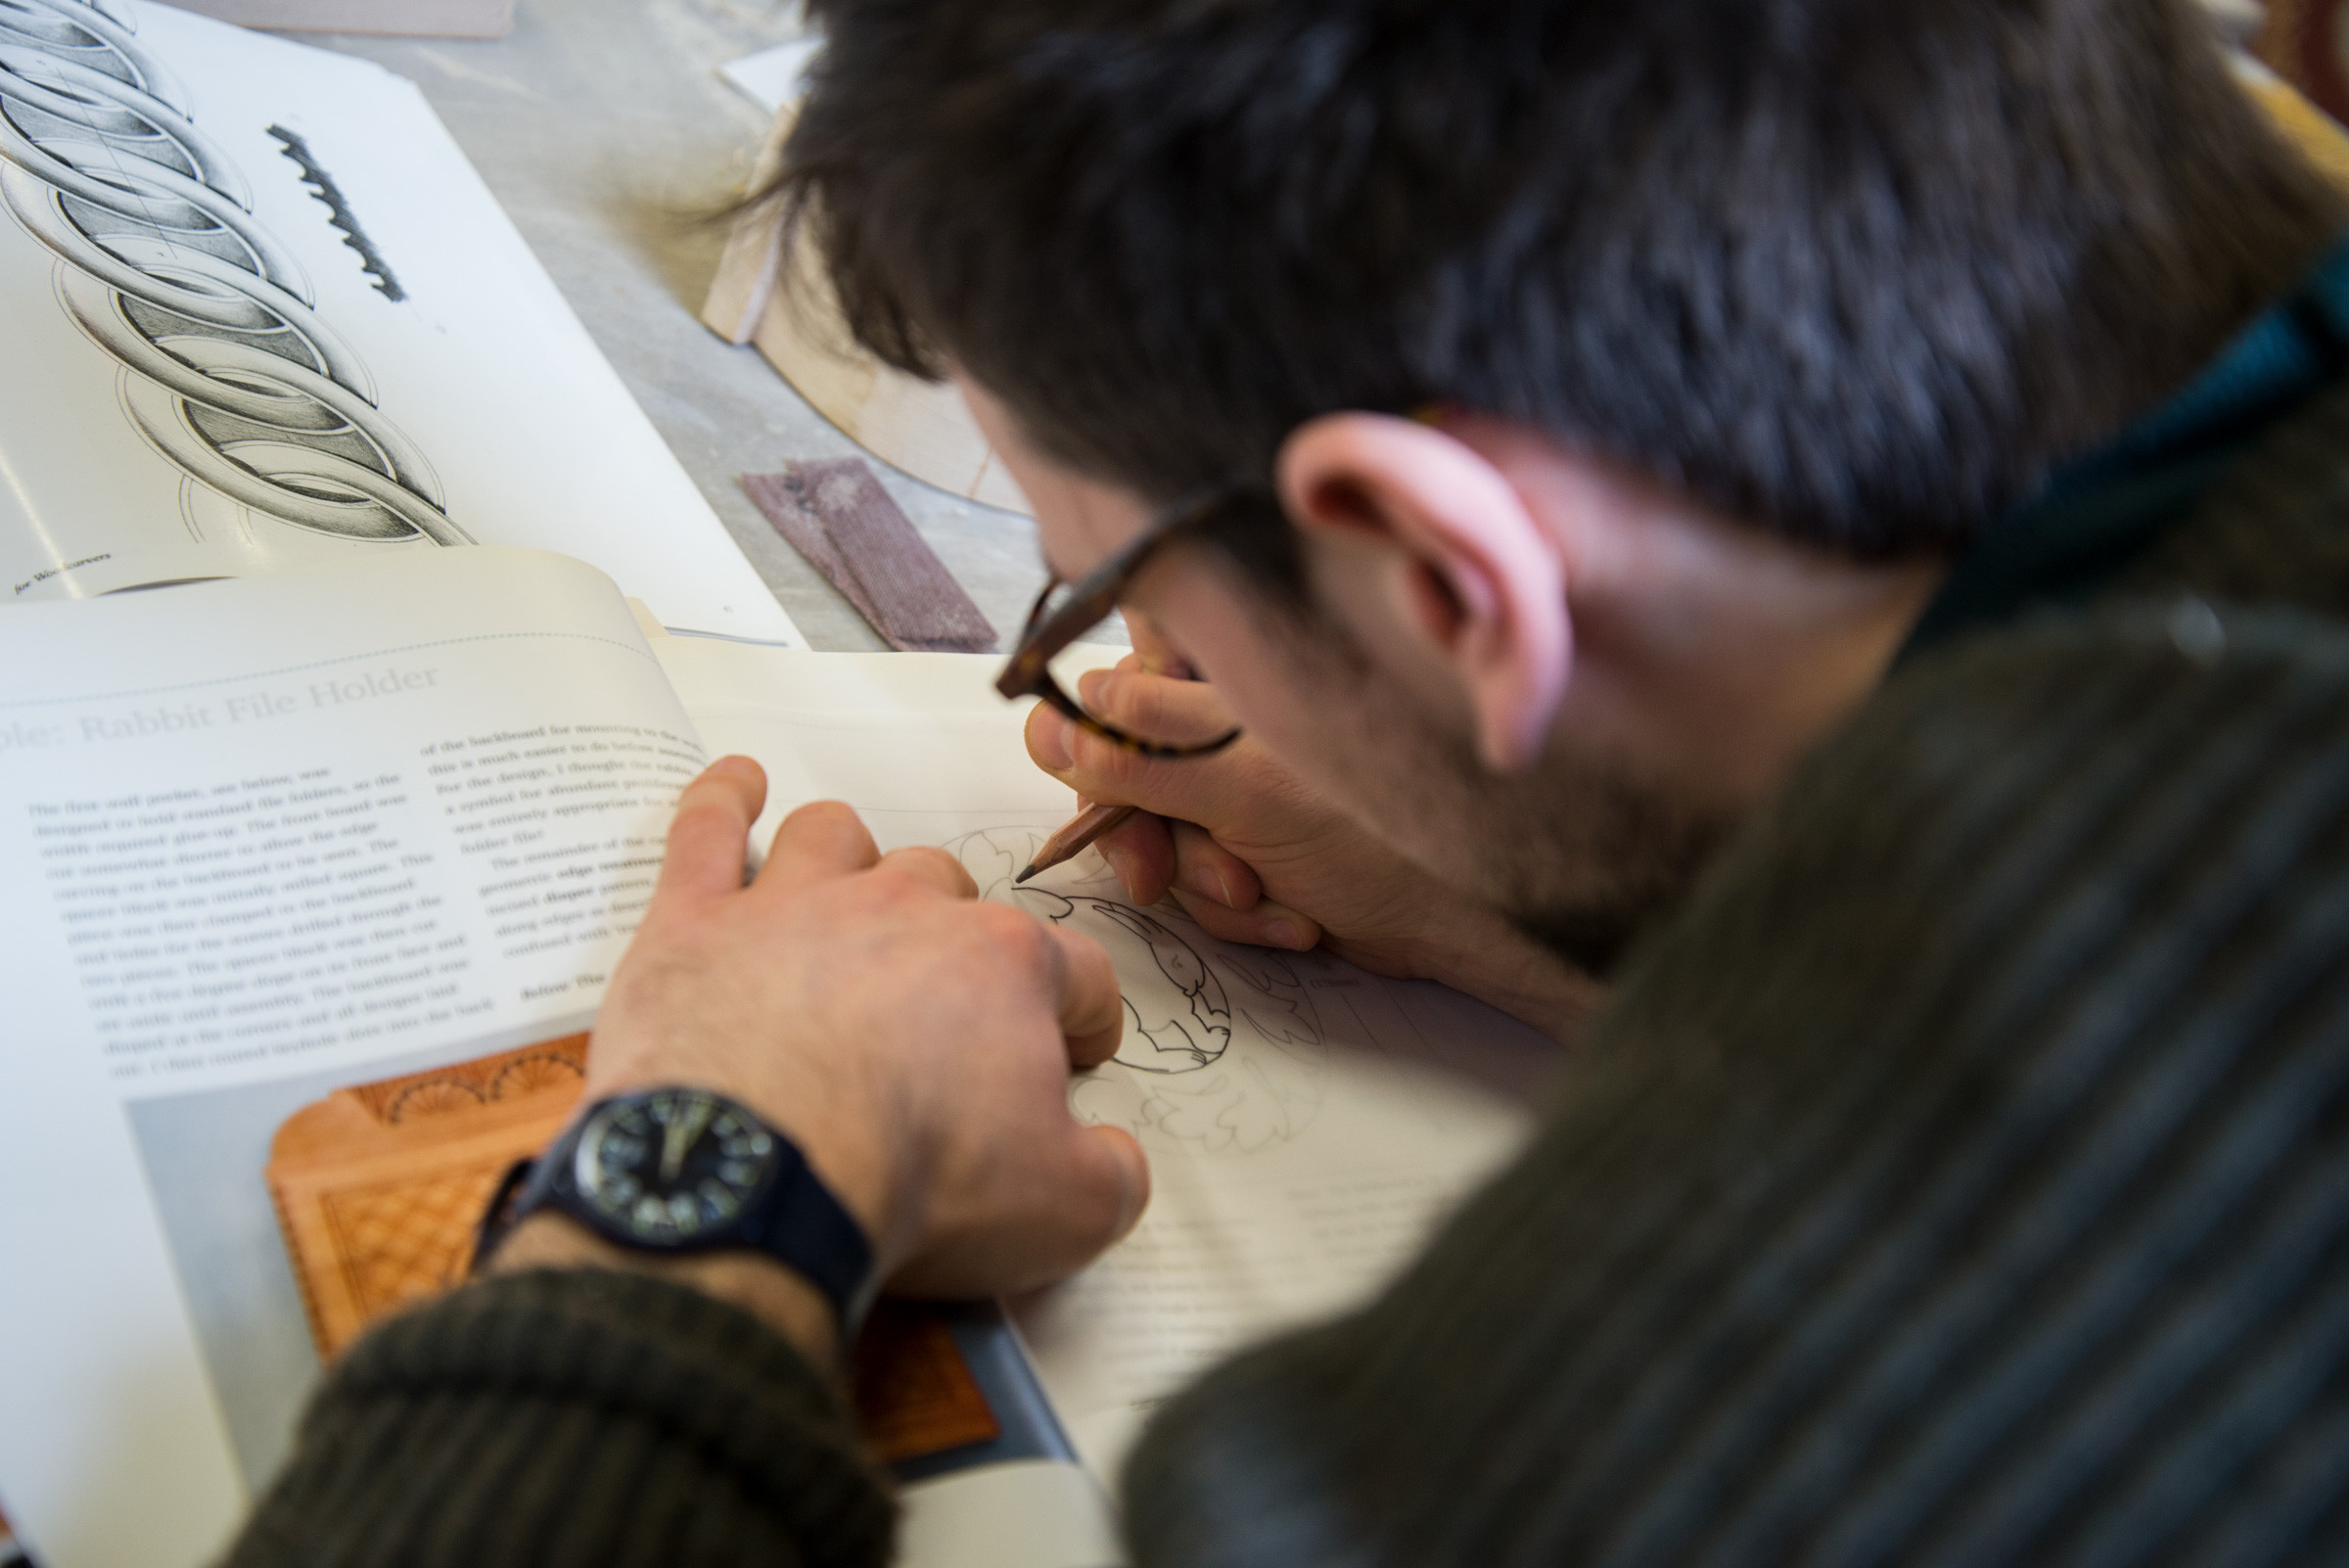 Close up image of a man drawing